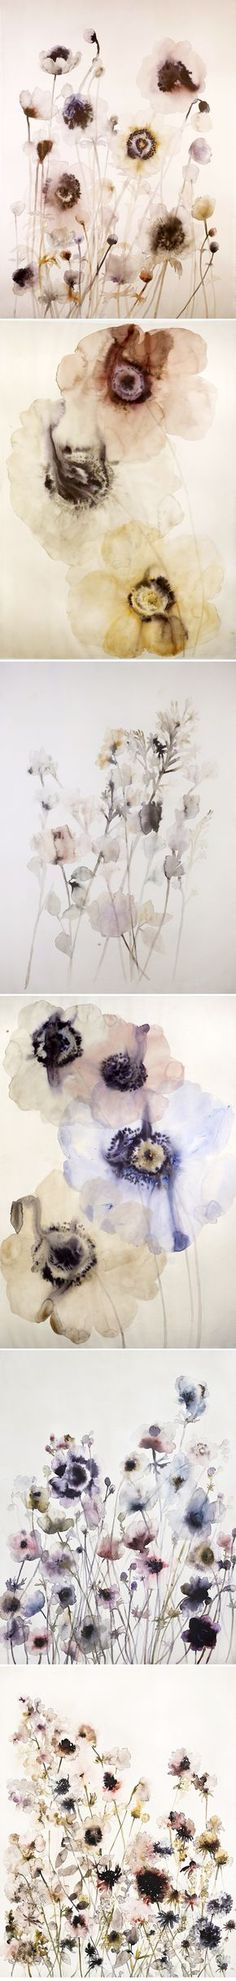 paintings by lourdes sanchez